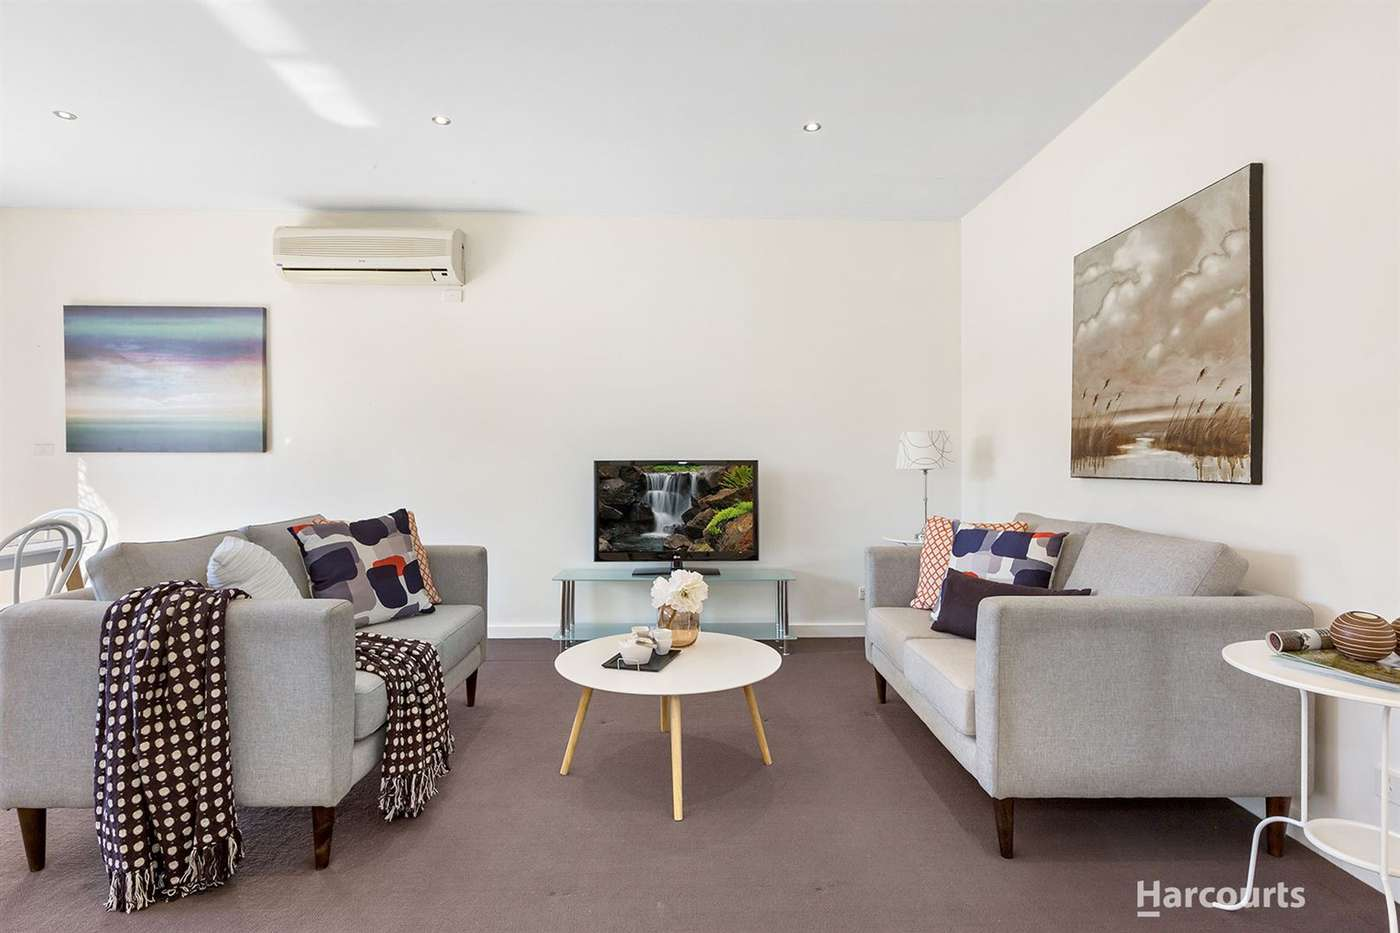 Main view of Homely townhouse listing, 2/30 Cranwell Sq, Caroline Springs, VIC 3023